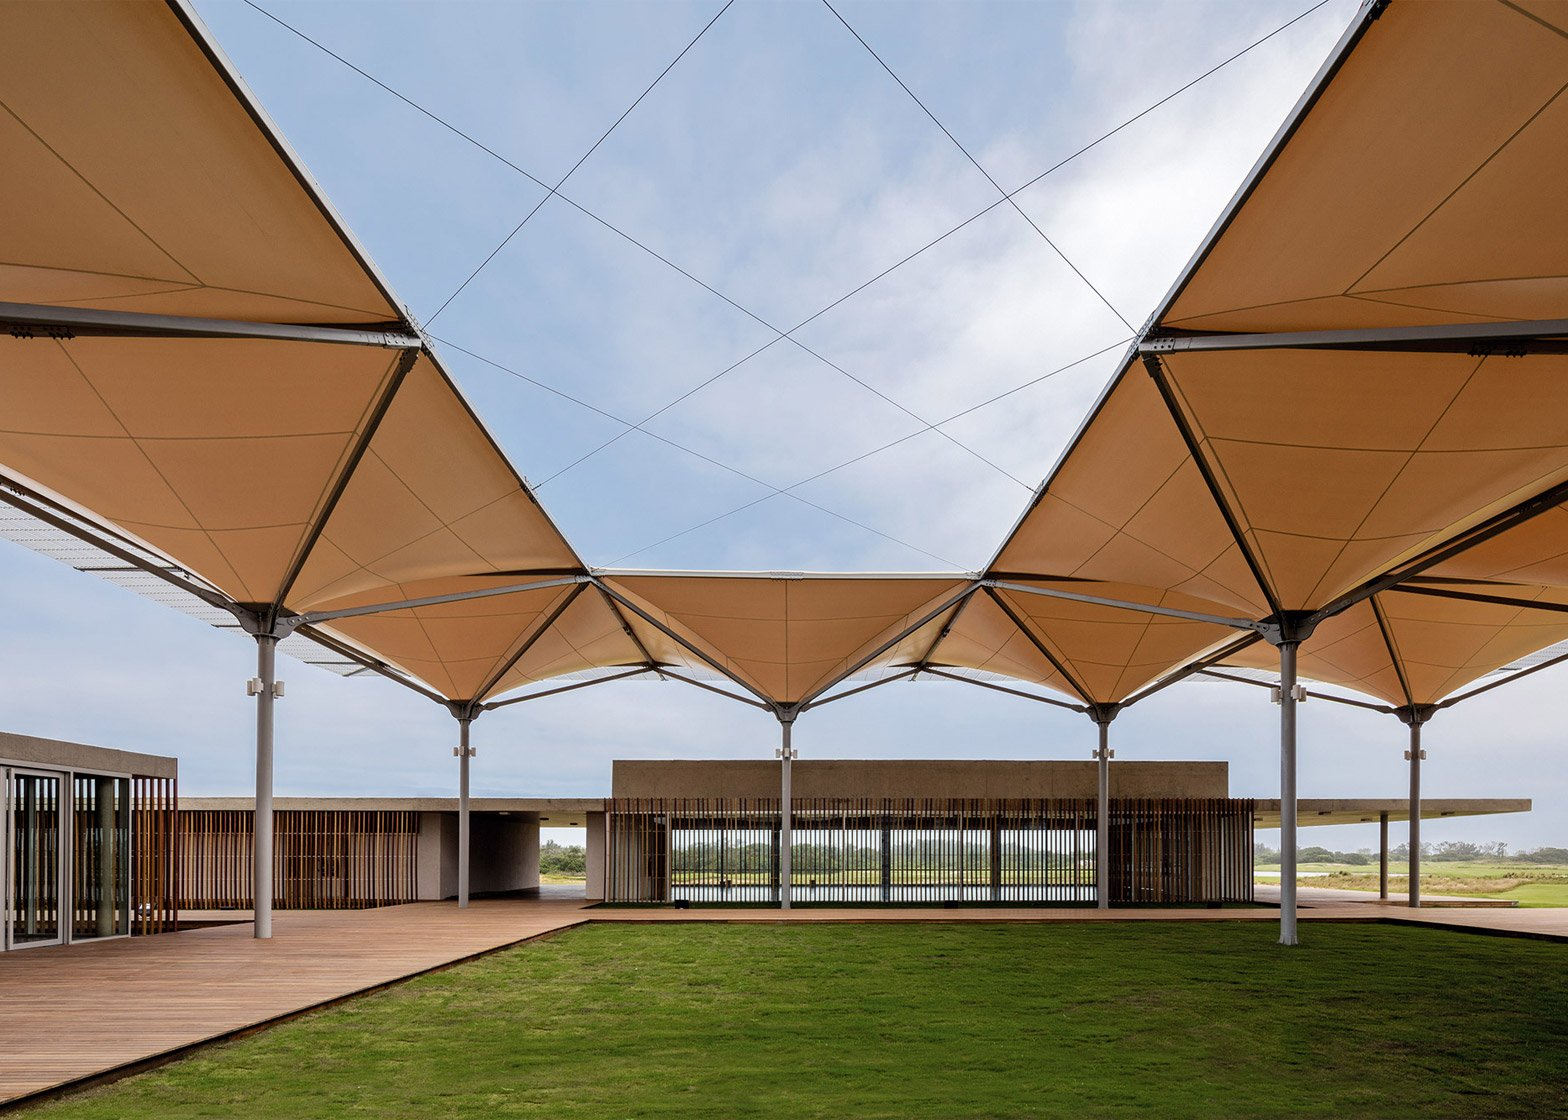 Olympic Golf Course by Rua Arquitectos